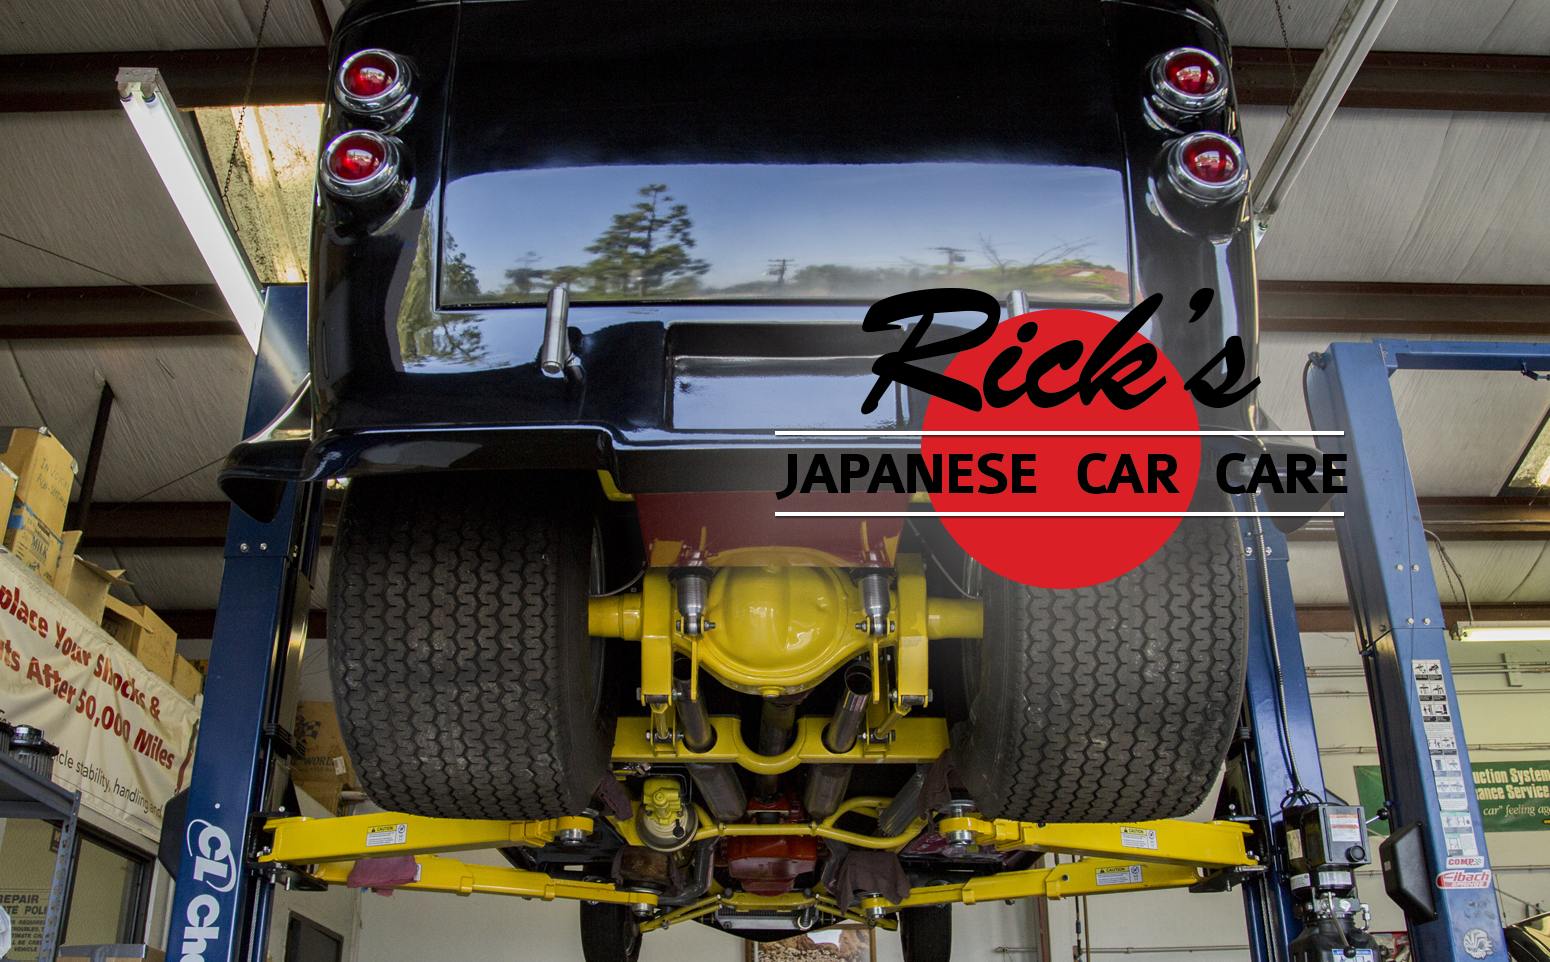 Ricks Japanese Car Care